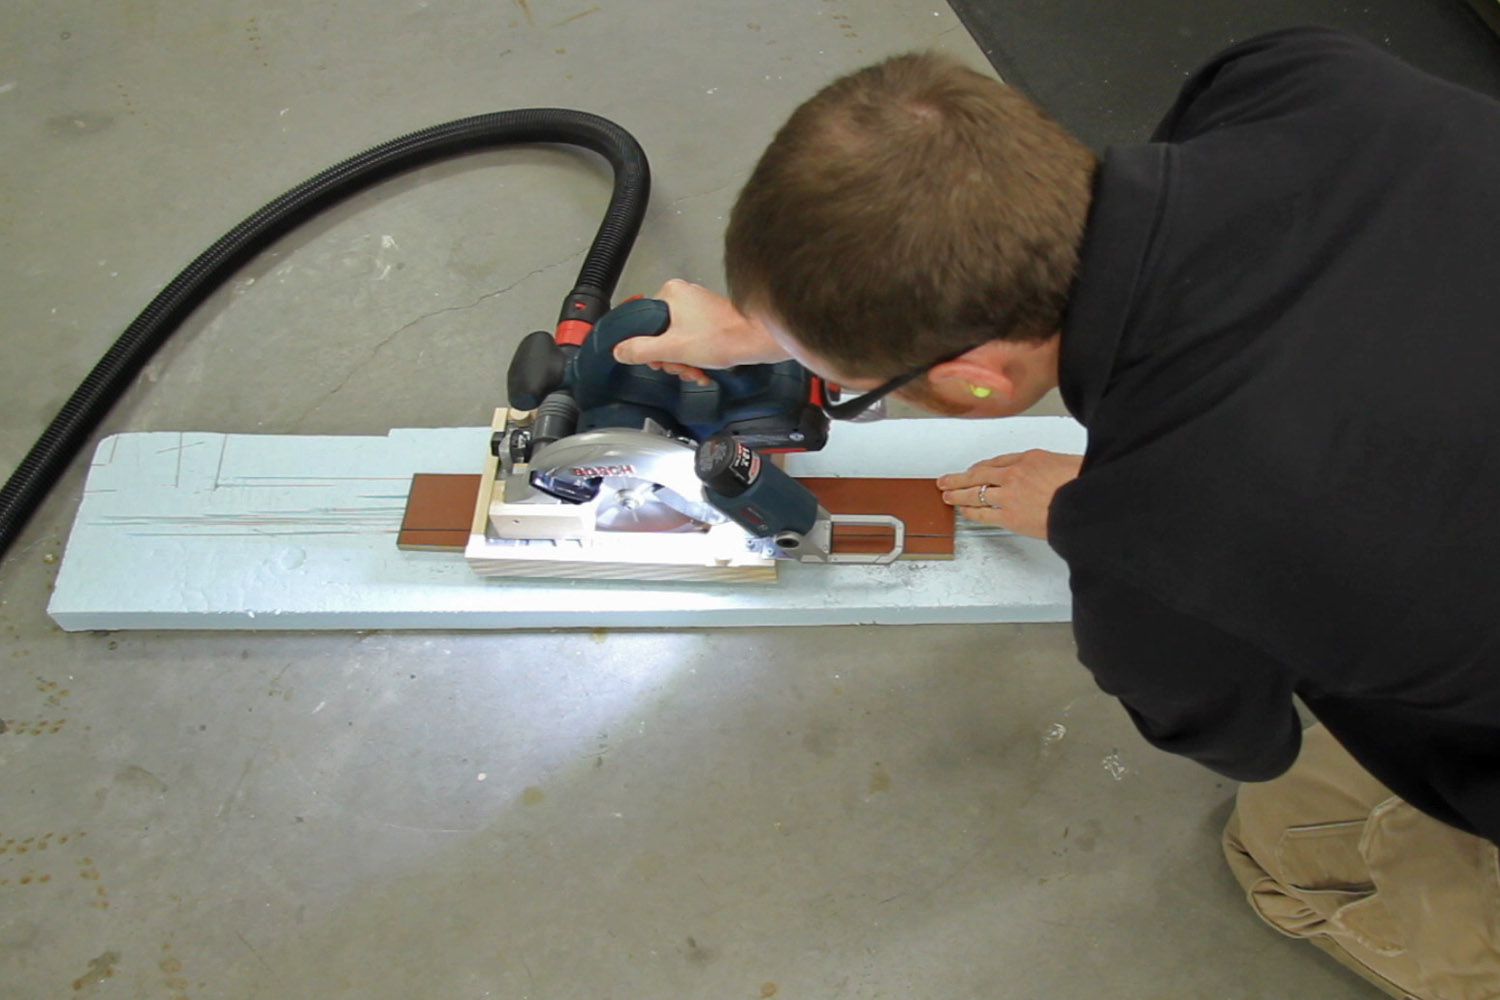 Making a dust-free cut with the ripping jig